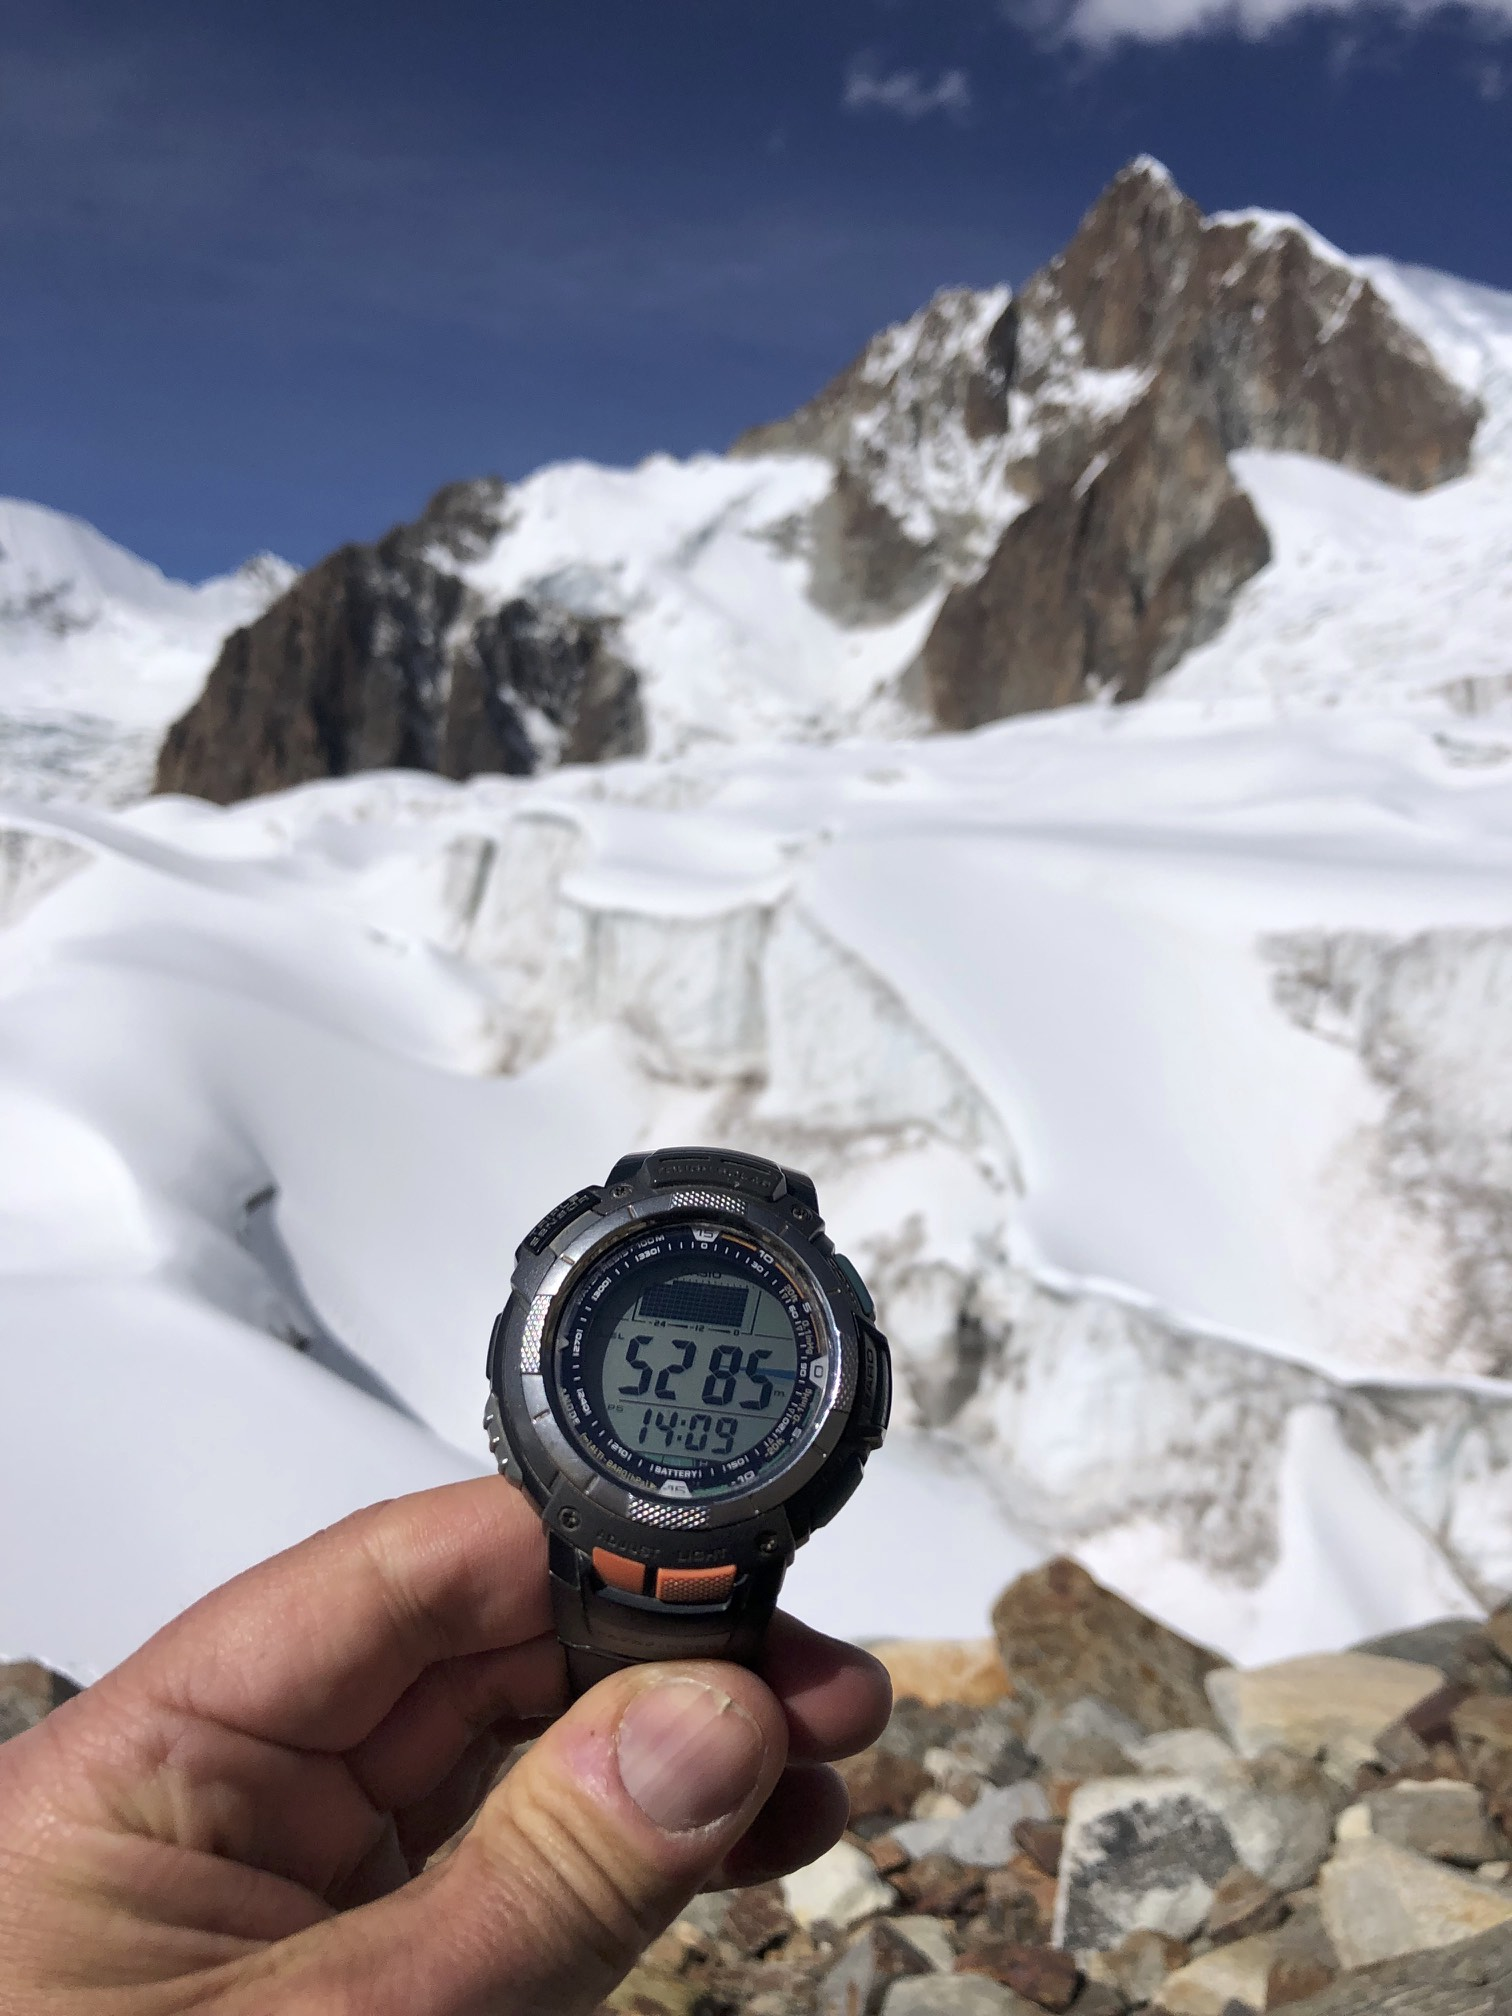 The altitude of the high camp. My altimiter is off by 180m so it is really 5,465m.